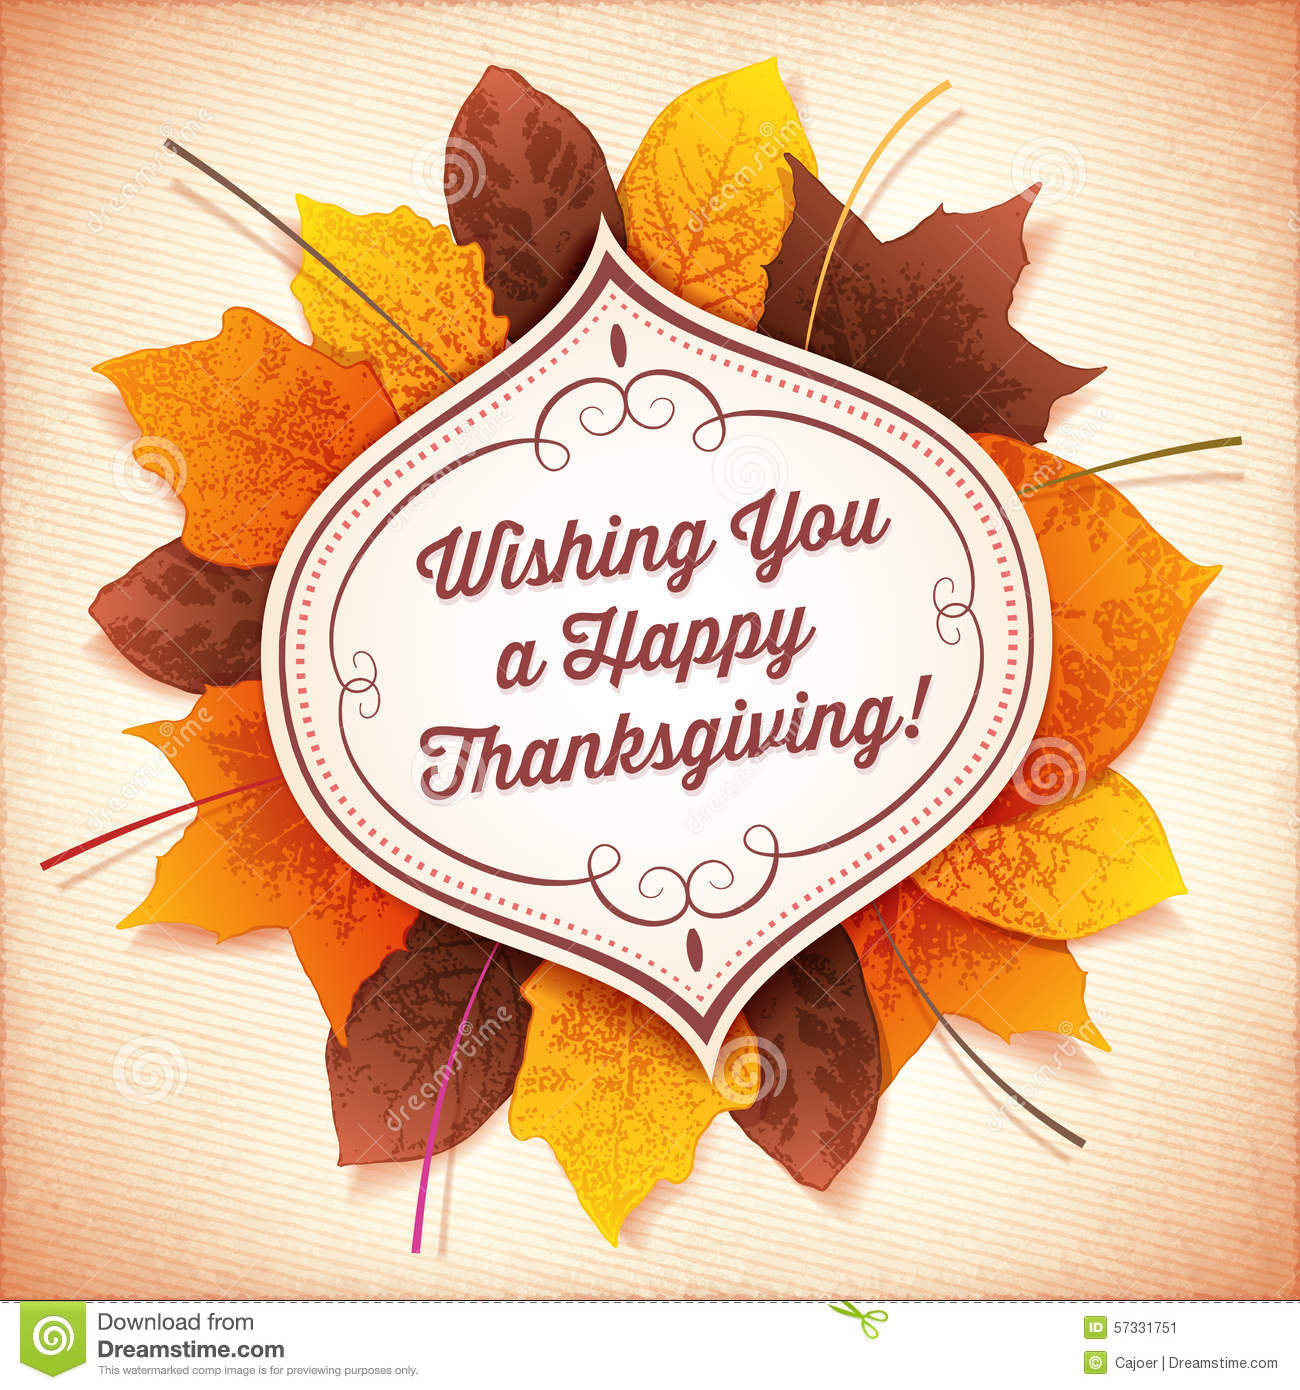 Thanksgiving greeting card with a white label and autumn leaves download thanksgiving greeting card with a white label and autumn leaves stock vector illustration of m4hsunfo